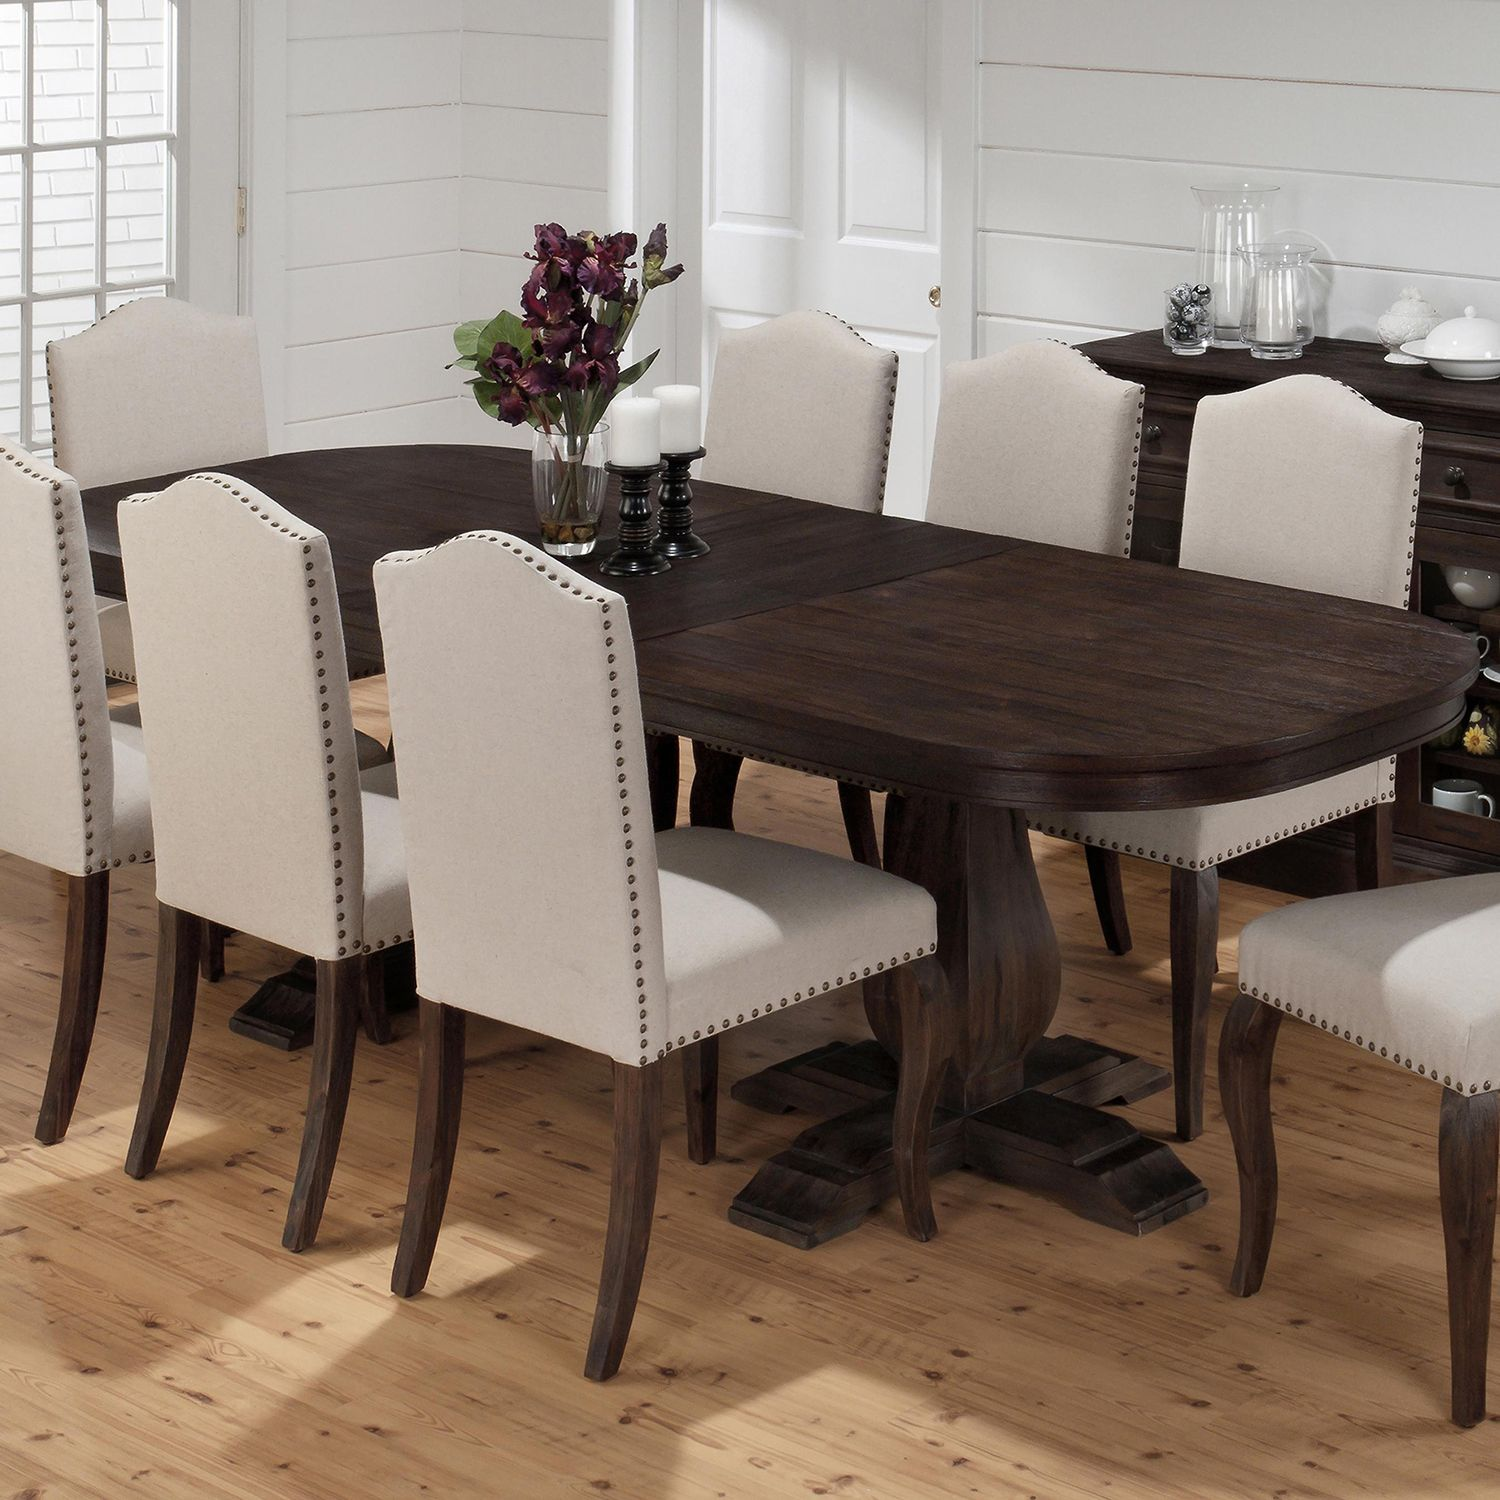 Grand Terrace Oval Dining Table Rectangle Dining Table Oval Table Dining Dining Room Sets